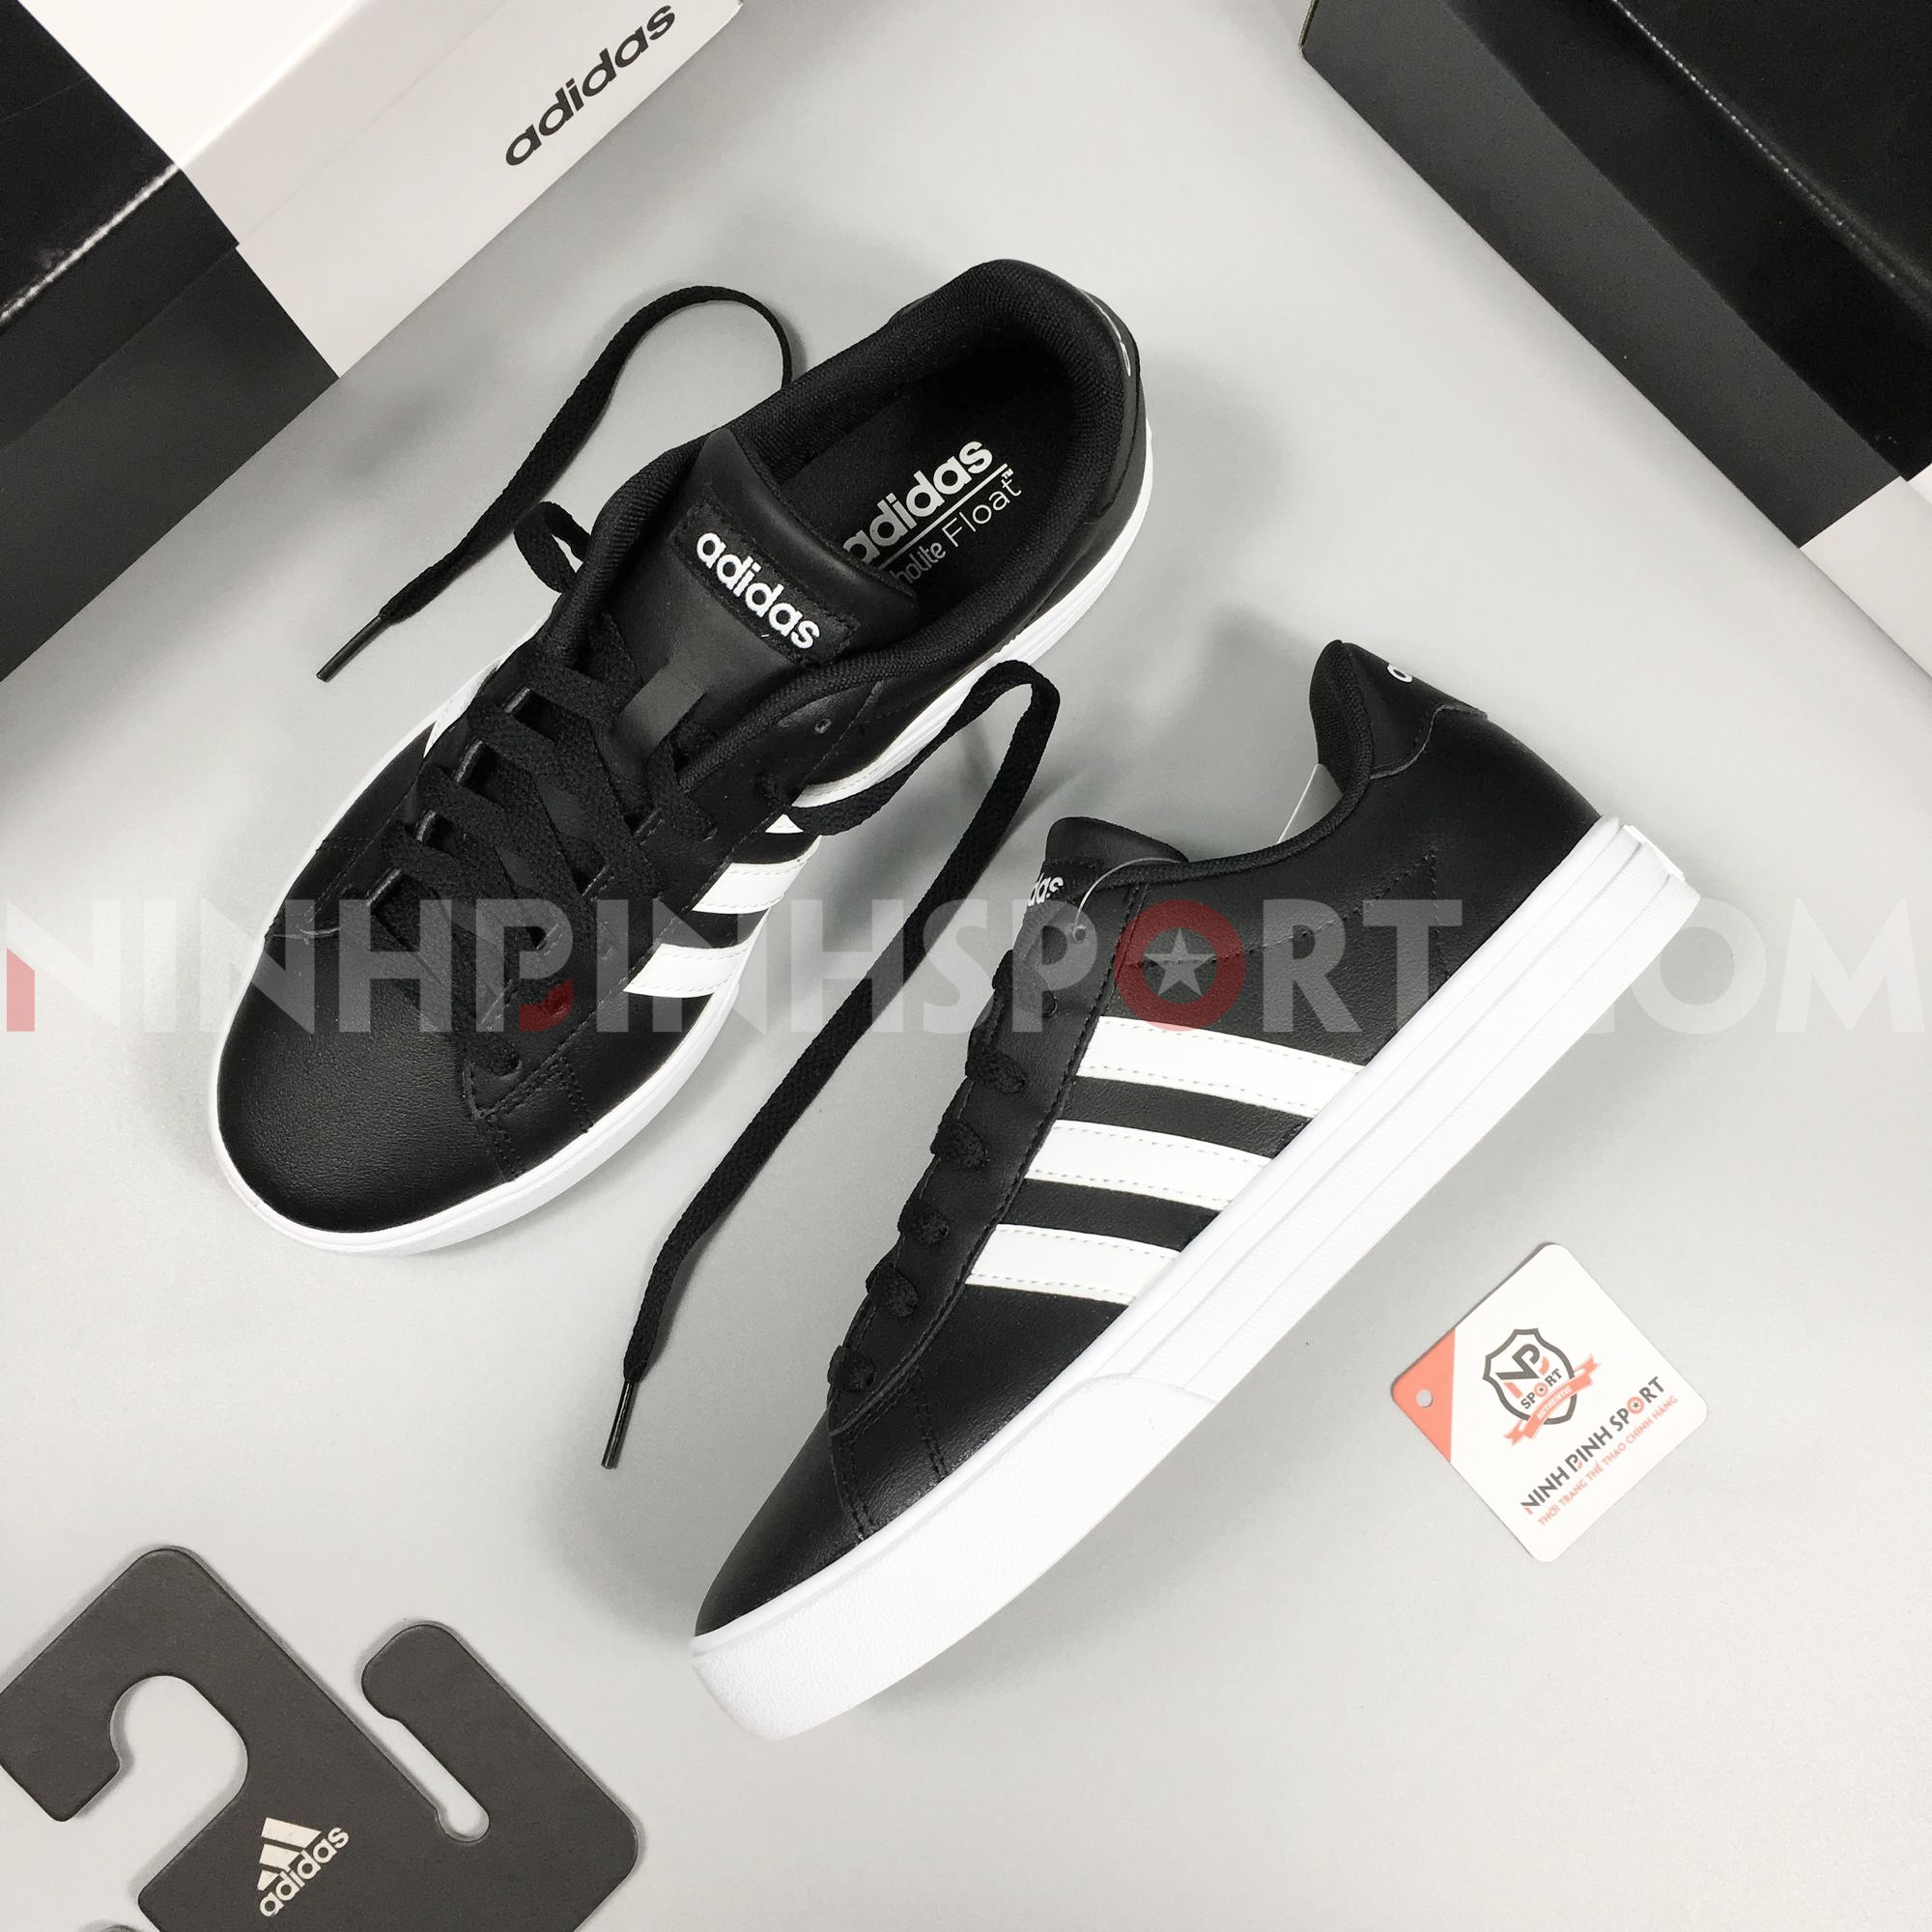 Giầy thể thao nam Adidas Neo Daily 2.0 Black - DB0161